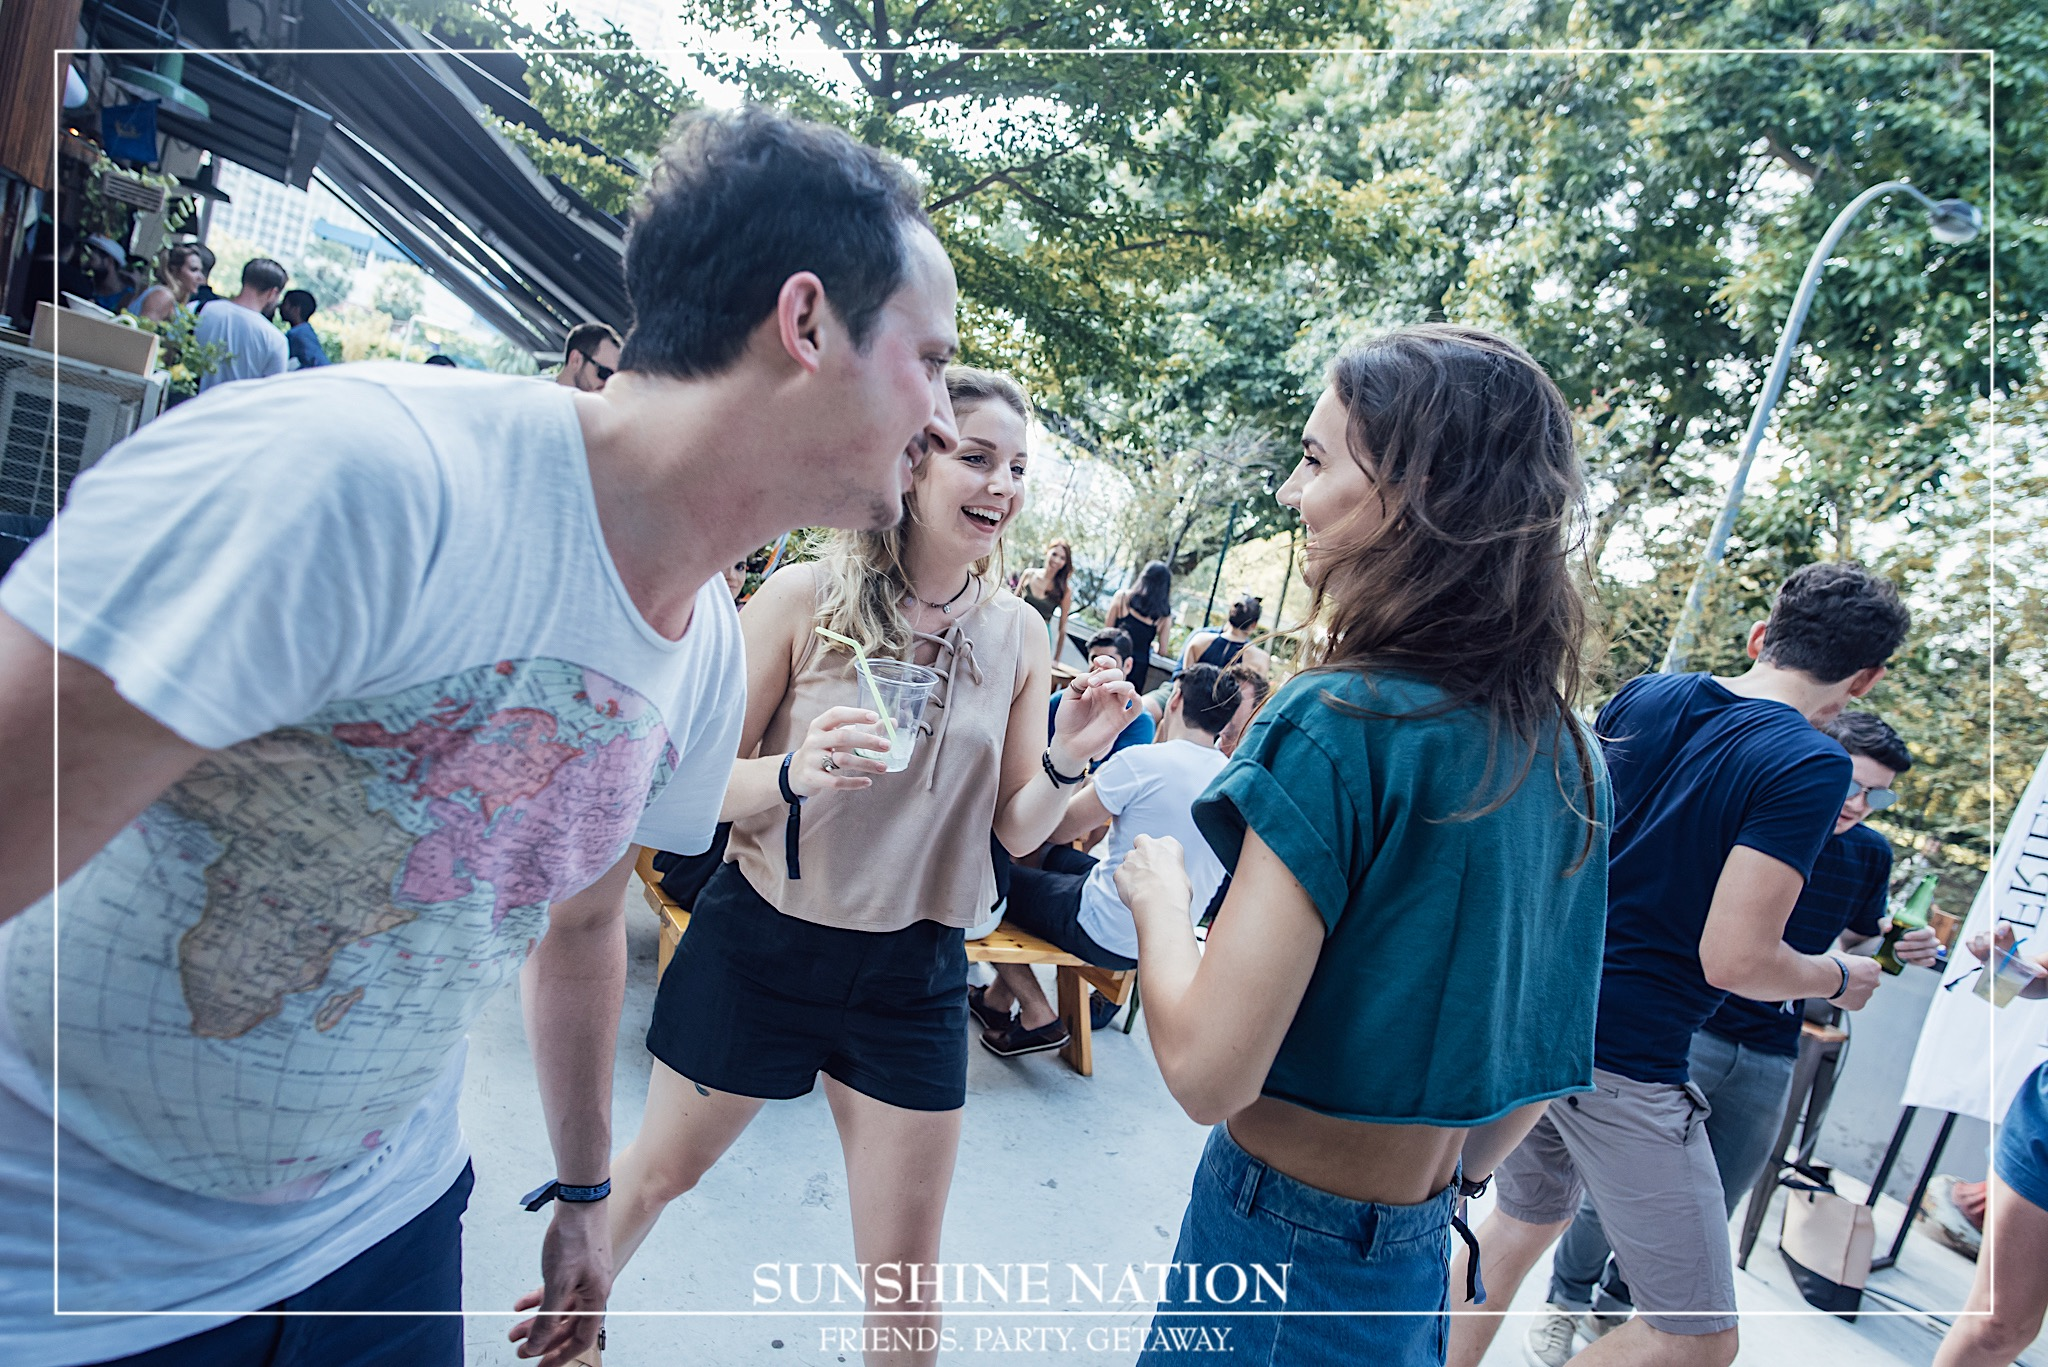 18092016_SunshineNation_Colossal118_Watermarked.jpg